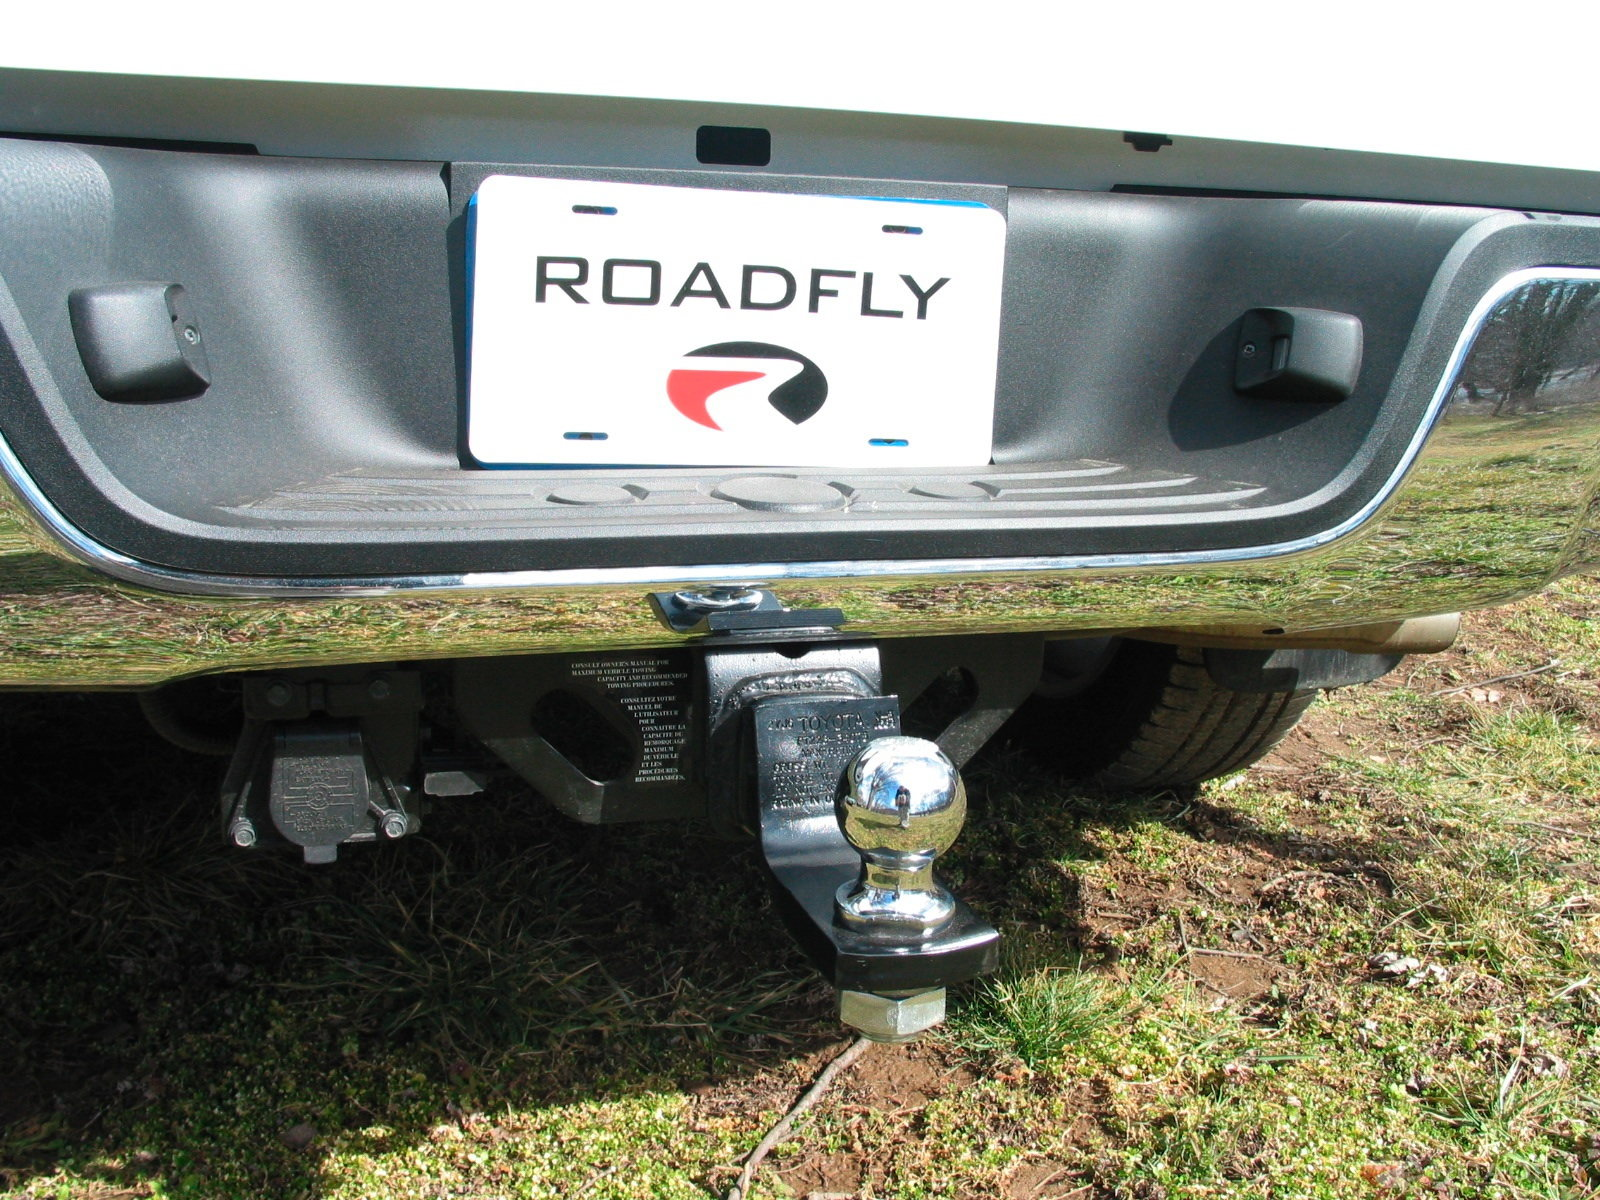 Toyota Tundra Towing Capacity >> Toyota Tundra 2000 to present How to Install a Trailer Hitch - Yotatech